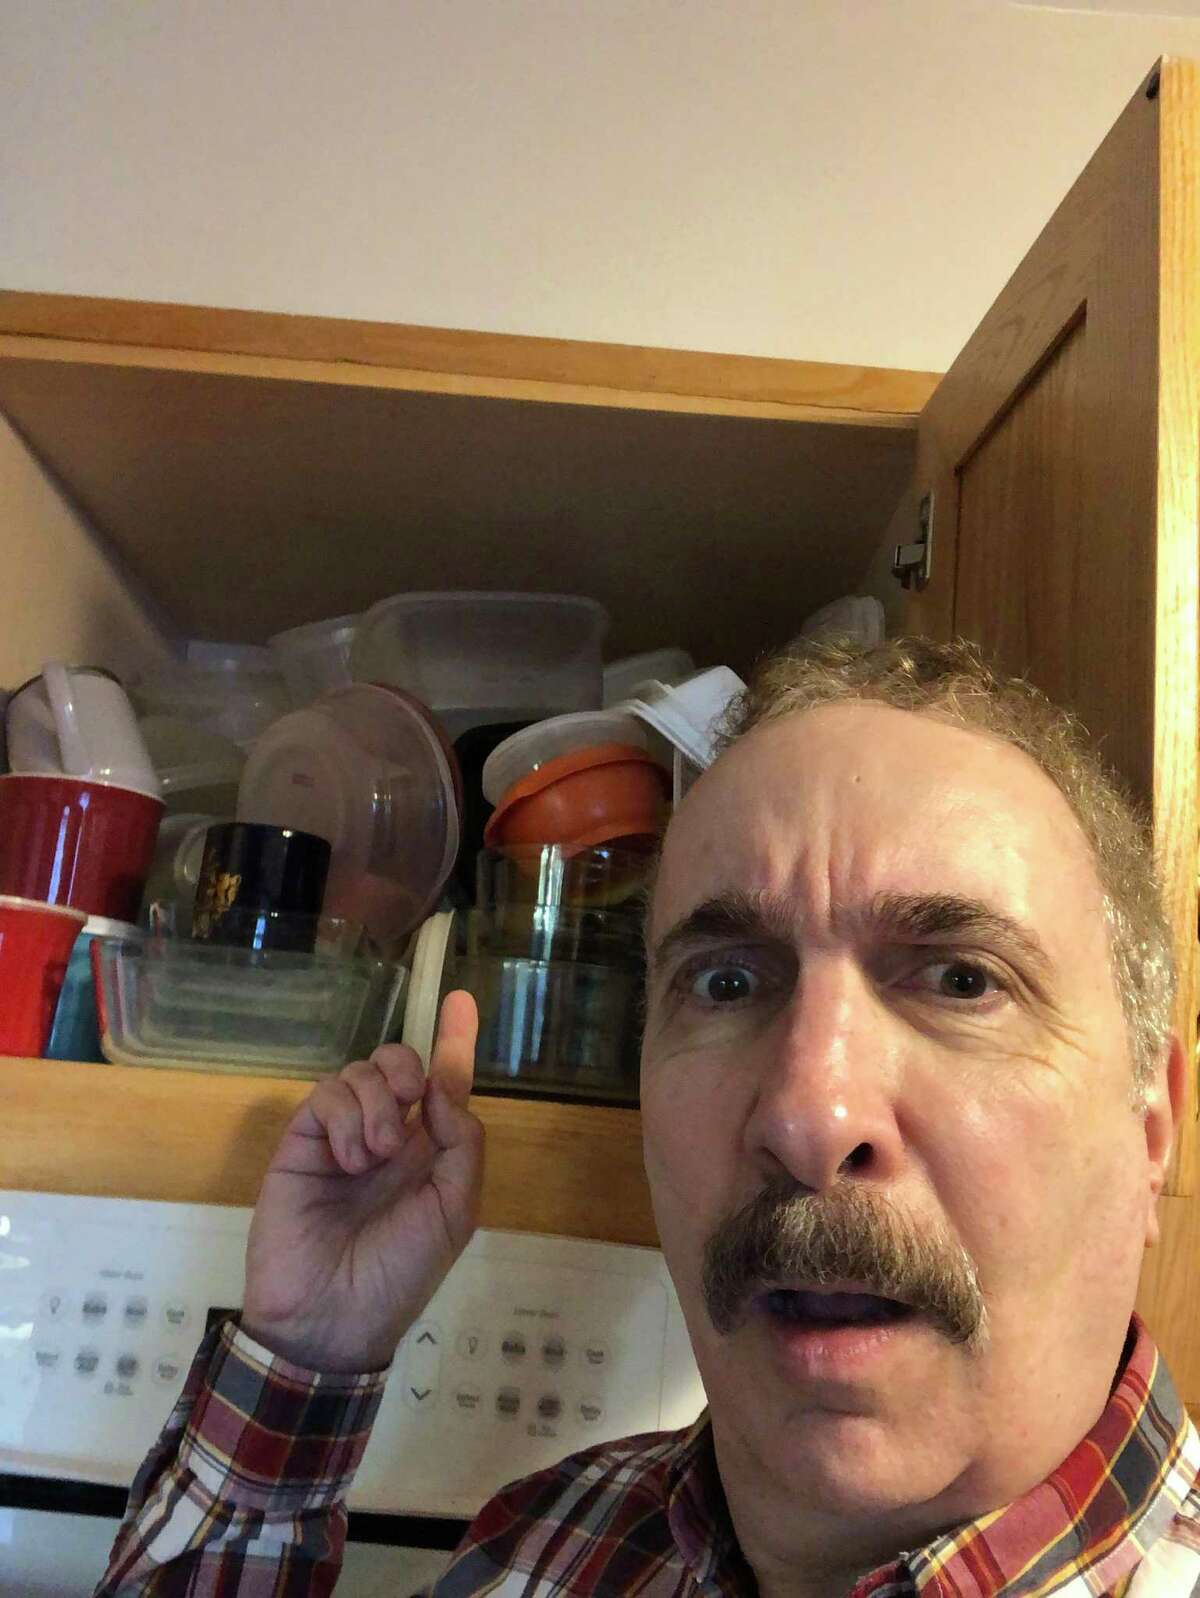 Jerry Zezima finds himself struggling with an incredible amount of Tupperware containers and plans to share his food storage insights...once he finds the lid.